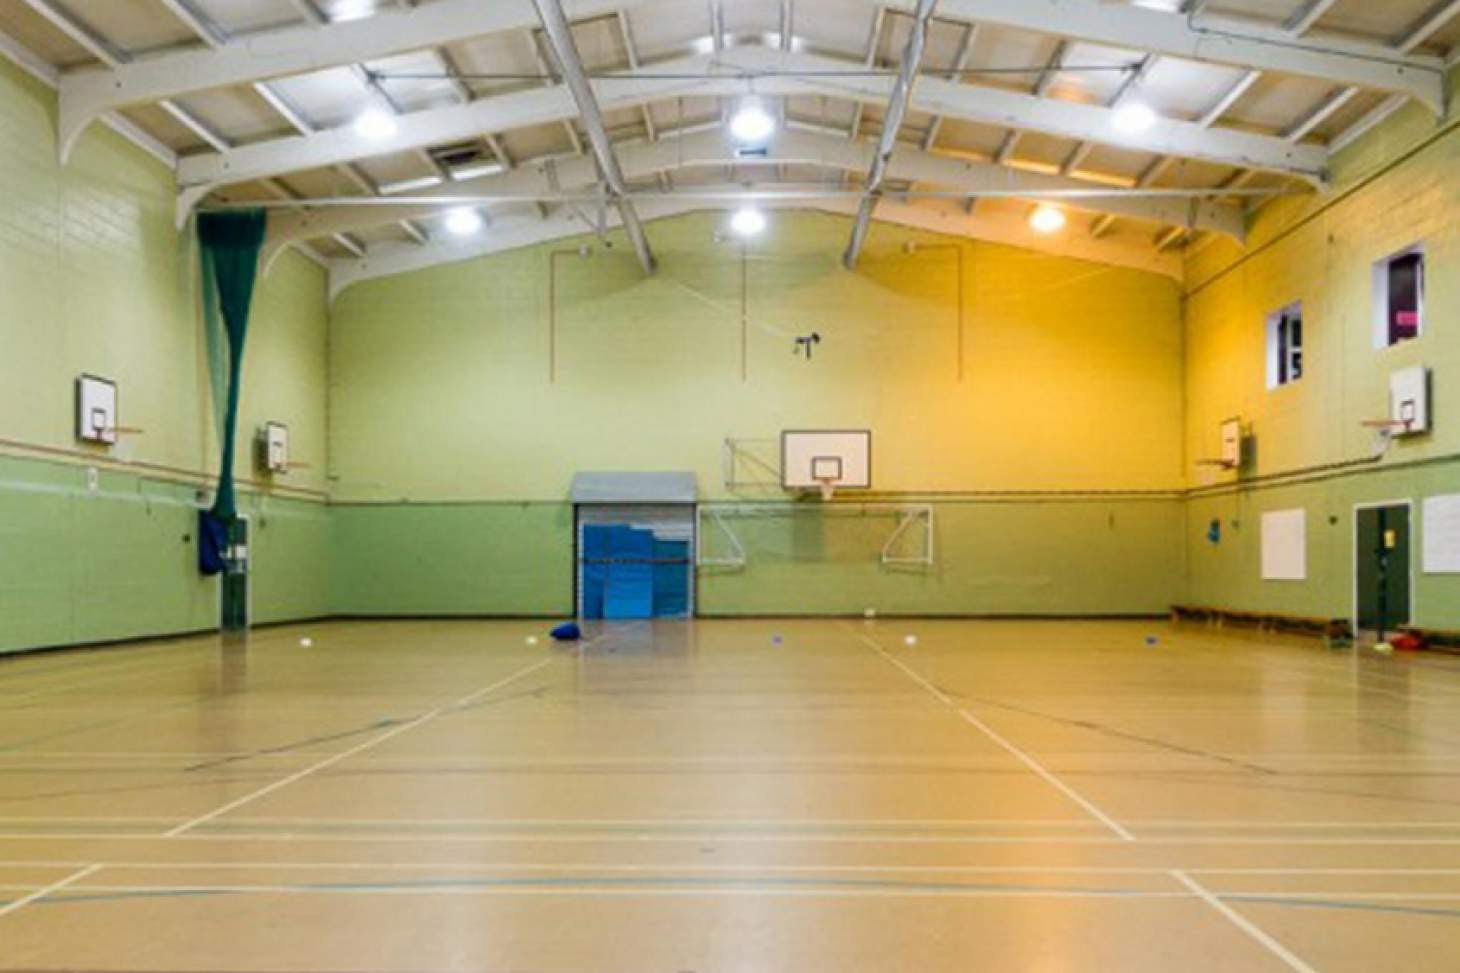 King Harold Business and Enterprise Academy Nets | Sports hall cricket facilities